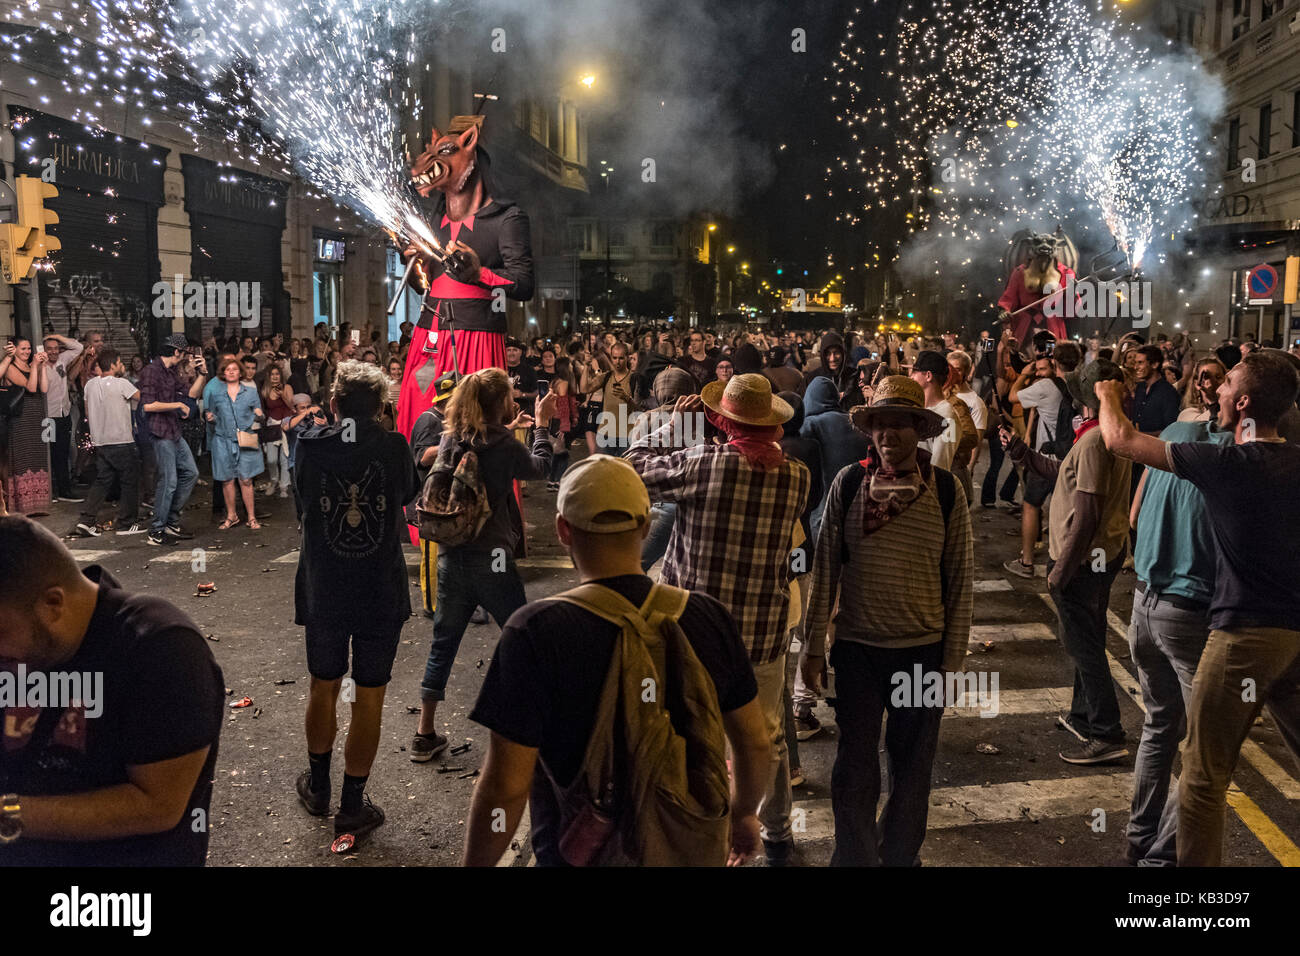 Correfocs are among the most striking features present in Catalan festivals. In the correfoc, a group of individuals Stock Photo